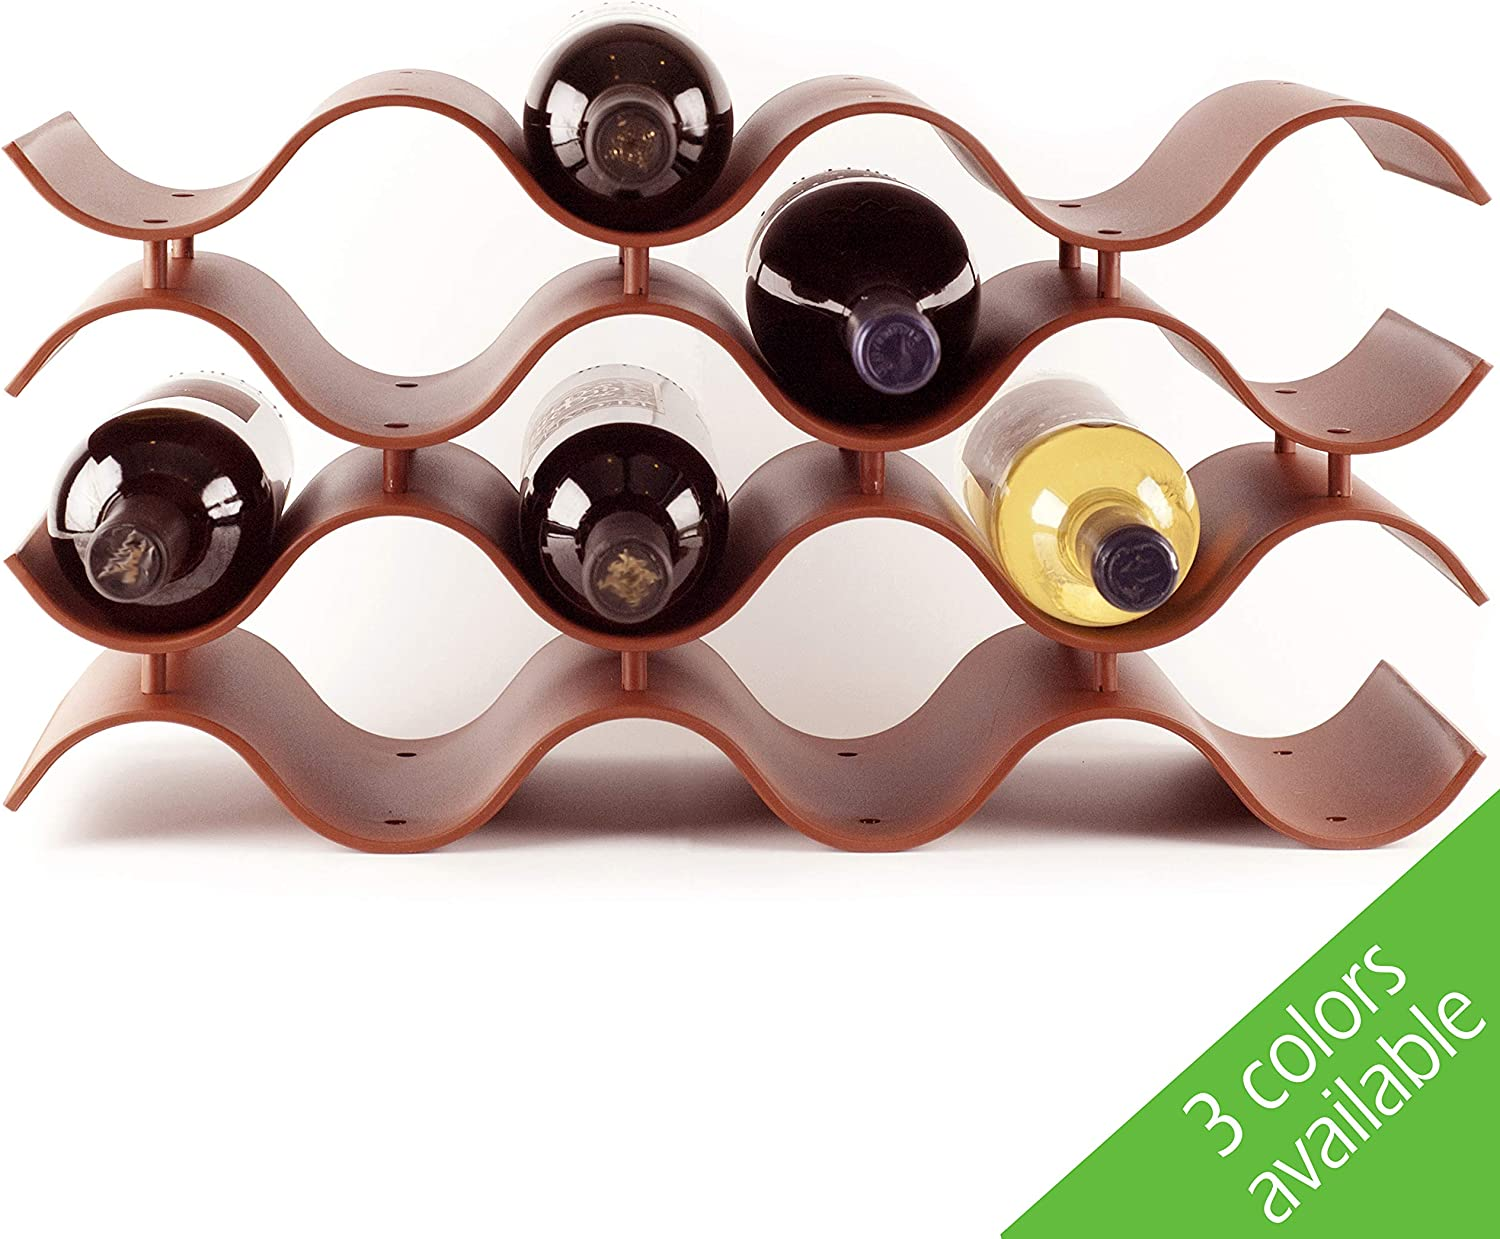 Baridoo Wine Rack. Stackable Countertop Wine Bottle Stand. 12 Bottles Wine Holder Organizer for Table Top, Pantry, Cabinet, Refrigerator. Wine Bar Quality Plastic Lightweight Storage (Terra Cotta).